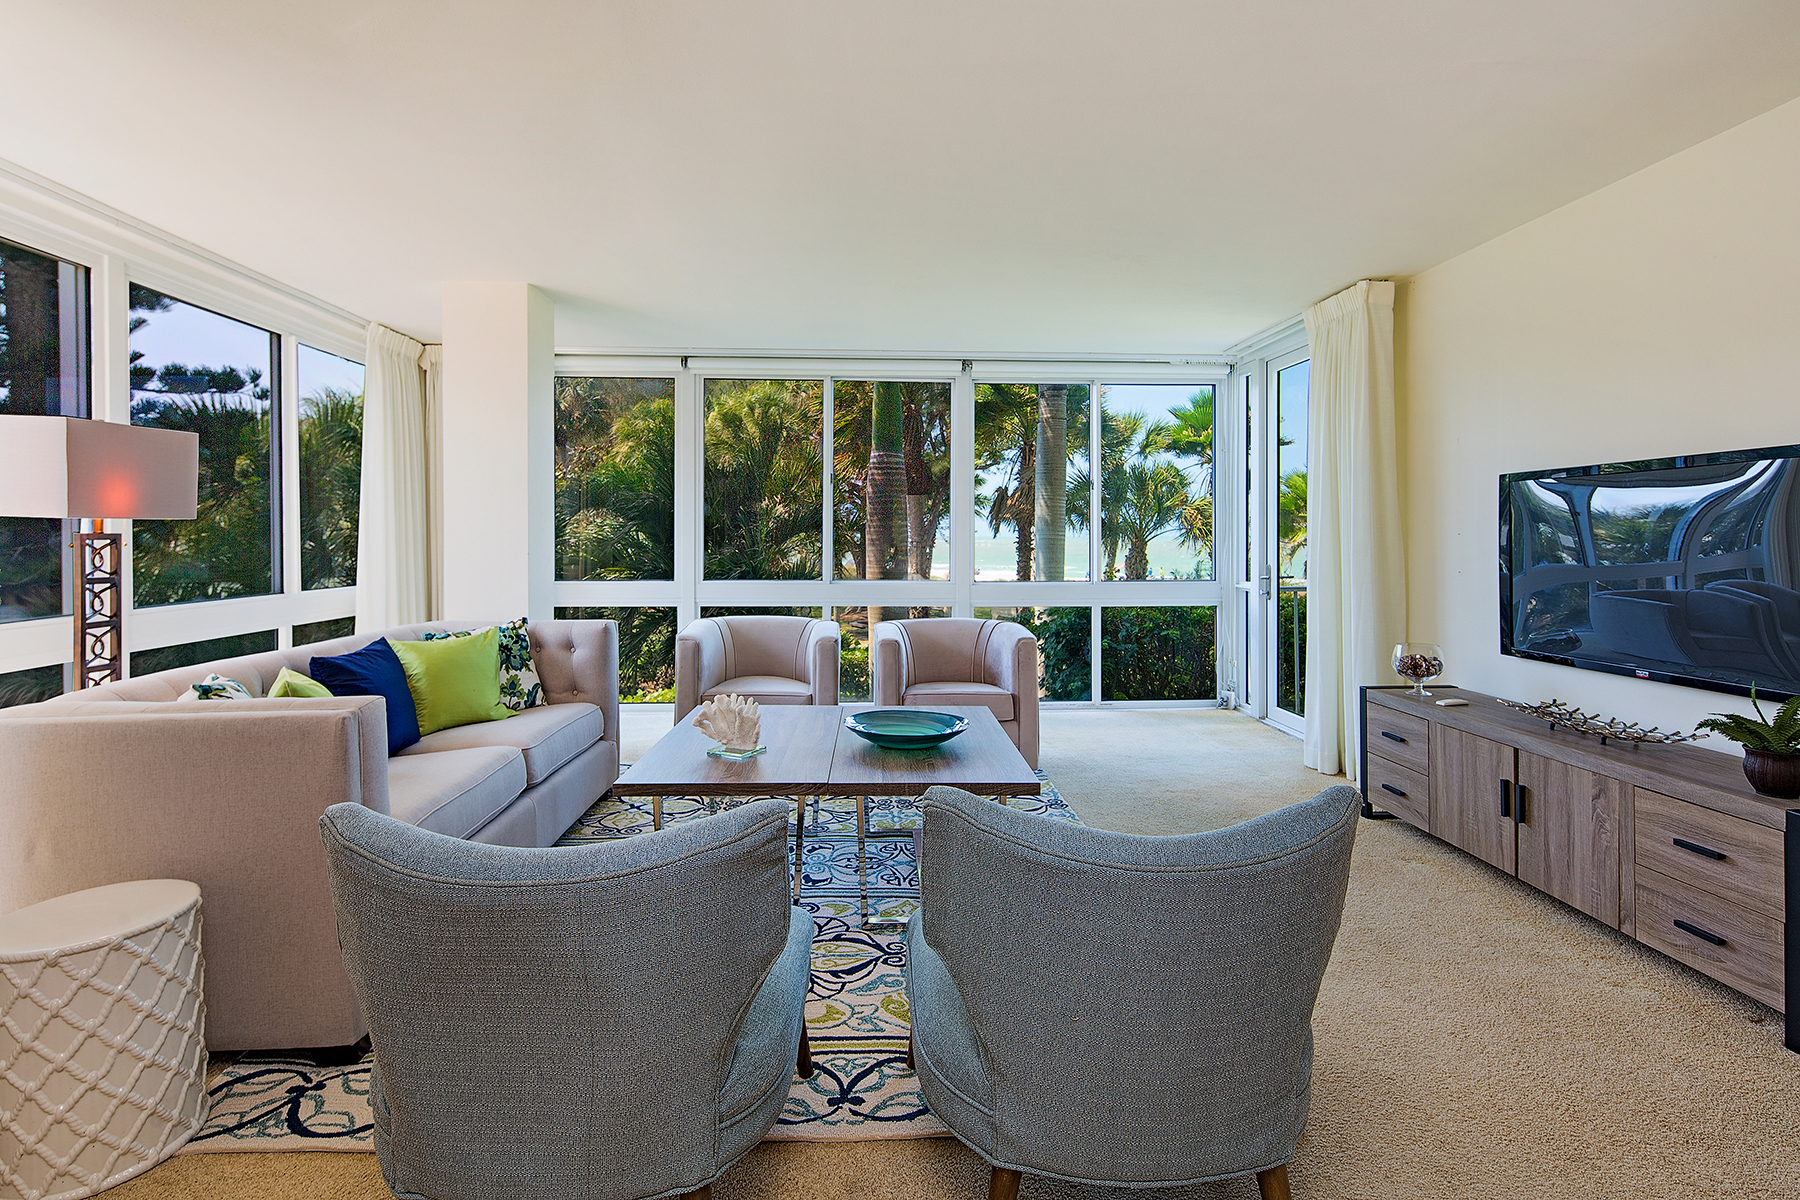 Condominium for Sale at MOORINGS - ROYAL PALM CLUB 2121 Gulf Shore Blvd N 108 Naples, Florida, 34102 United States